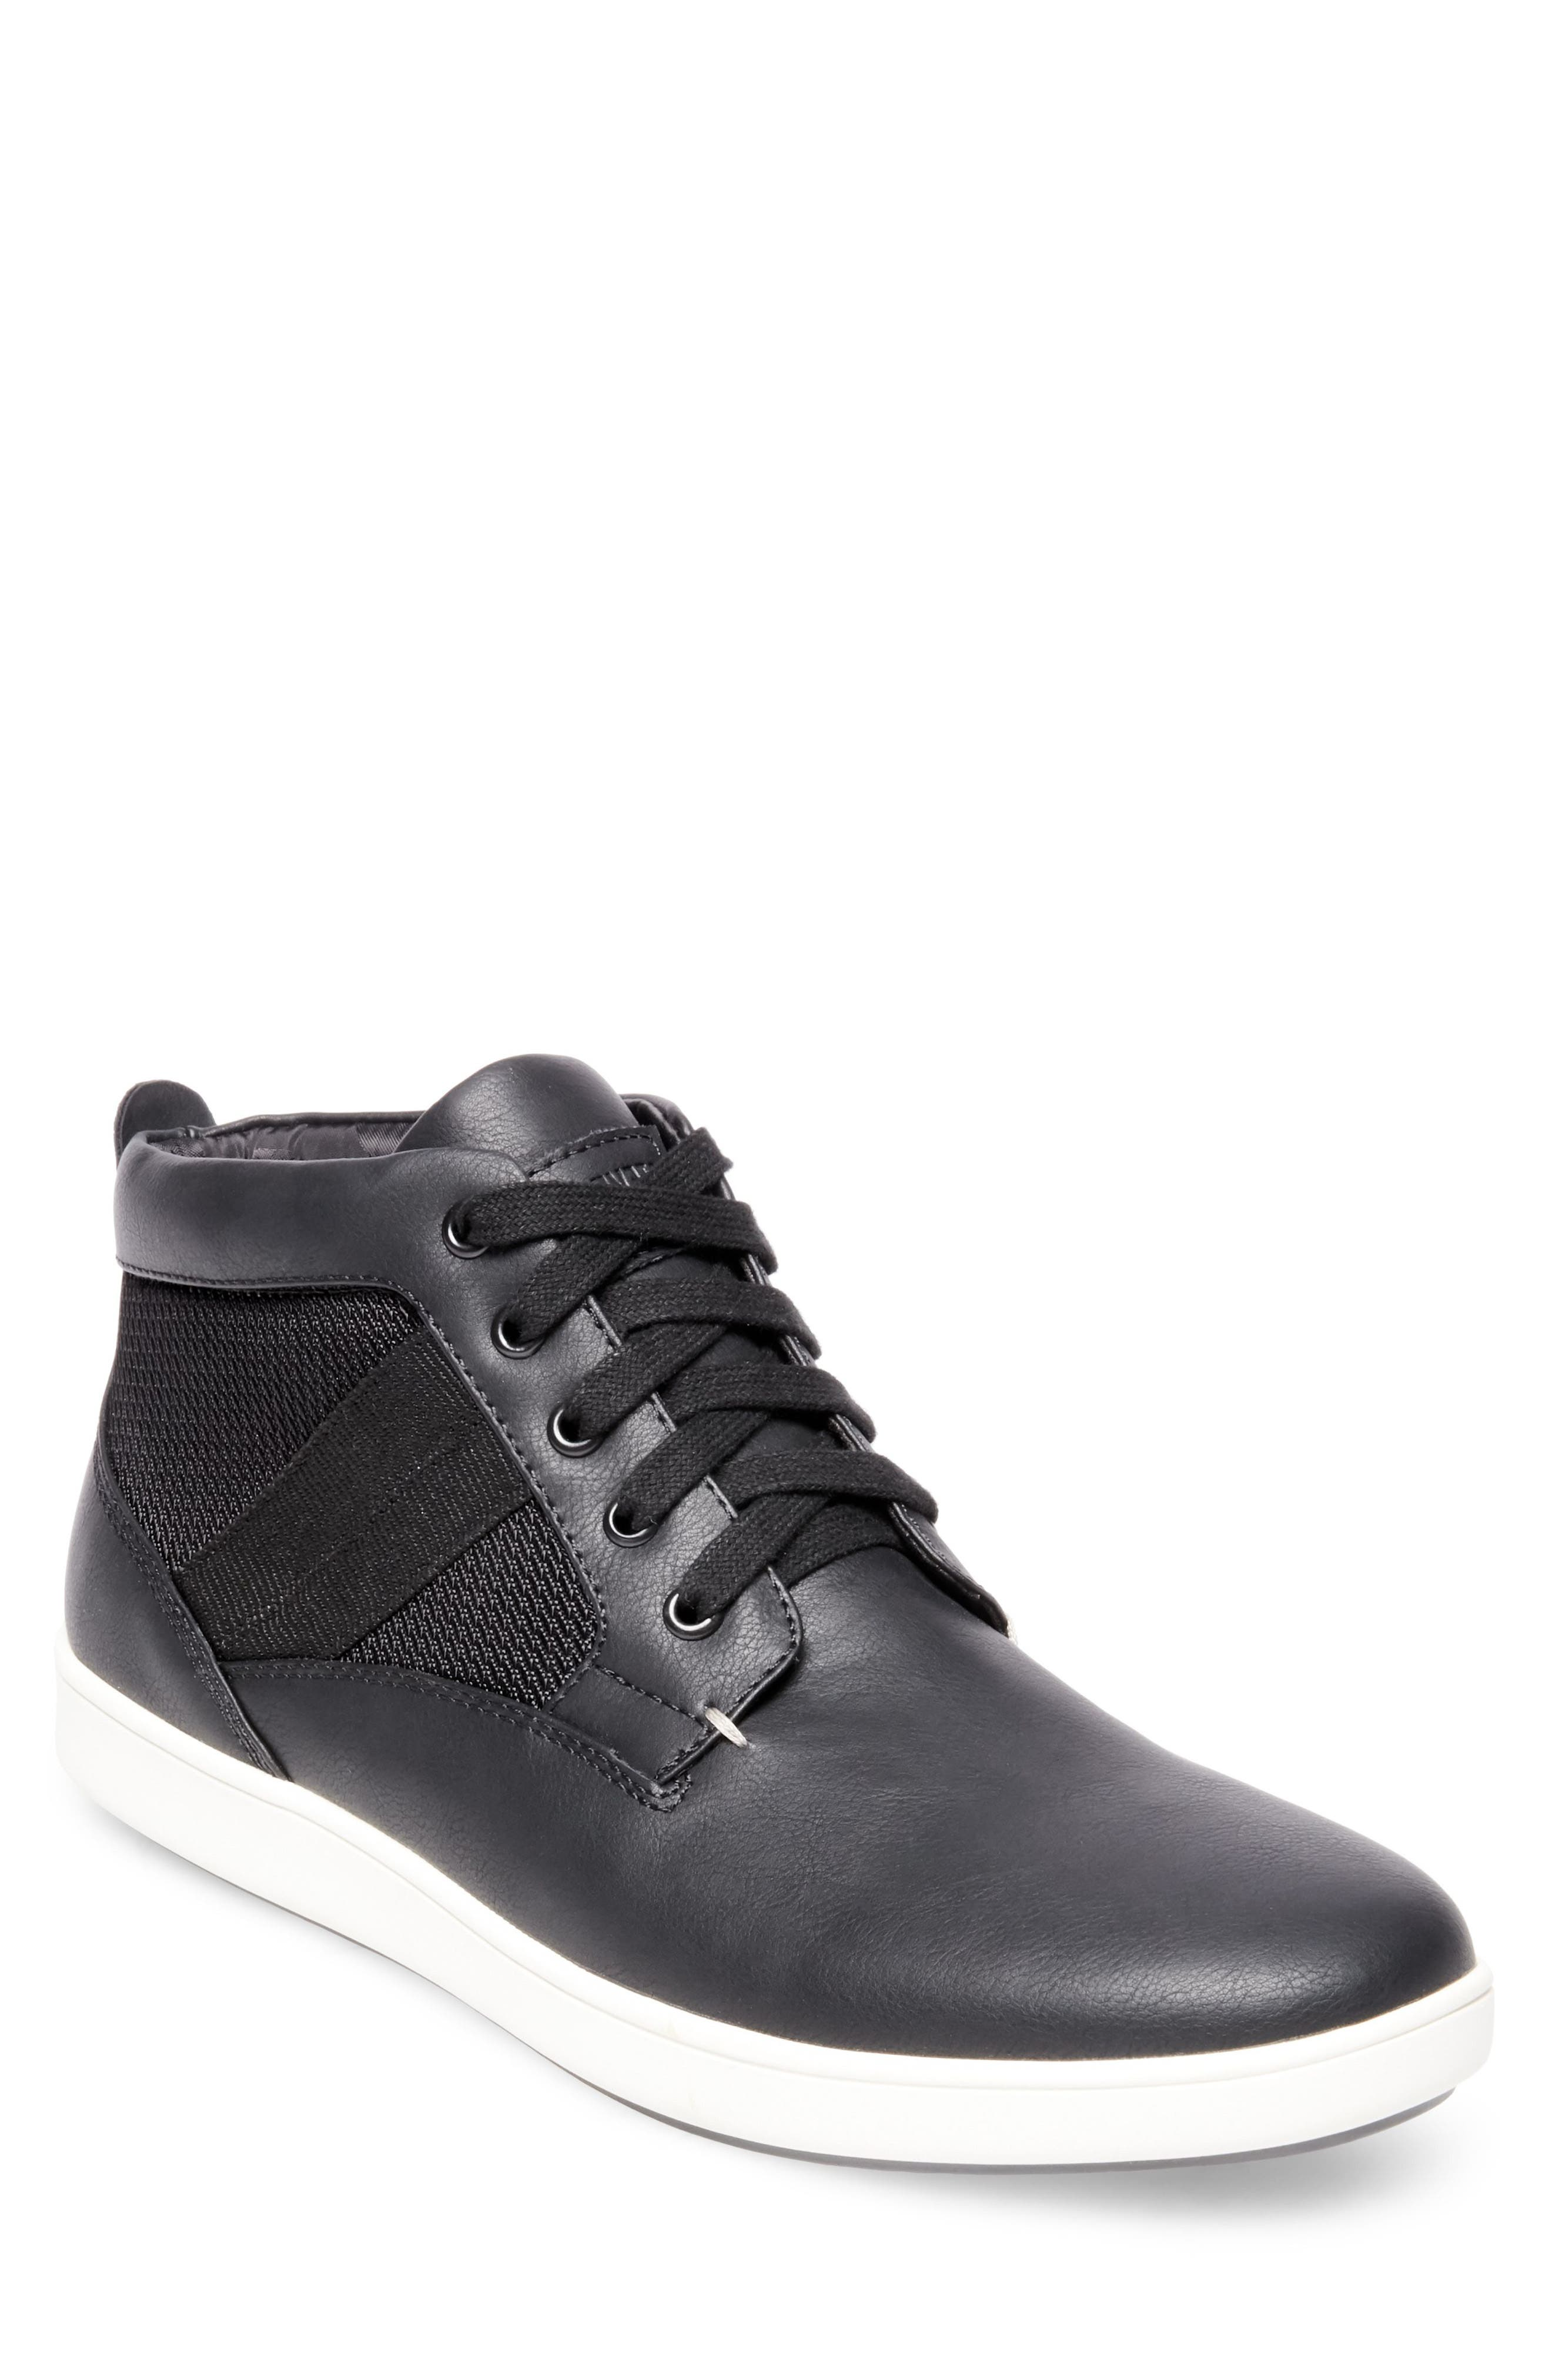 Frazier Sneaker Boot,                             Main thumbnail 1, color,                             007